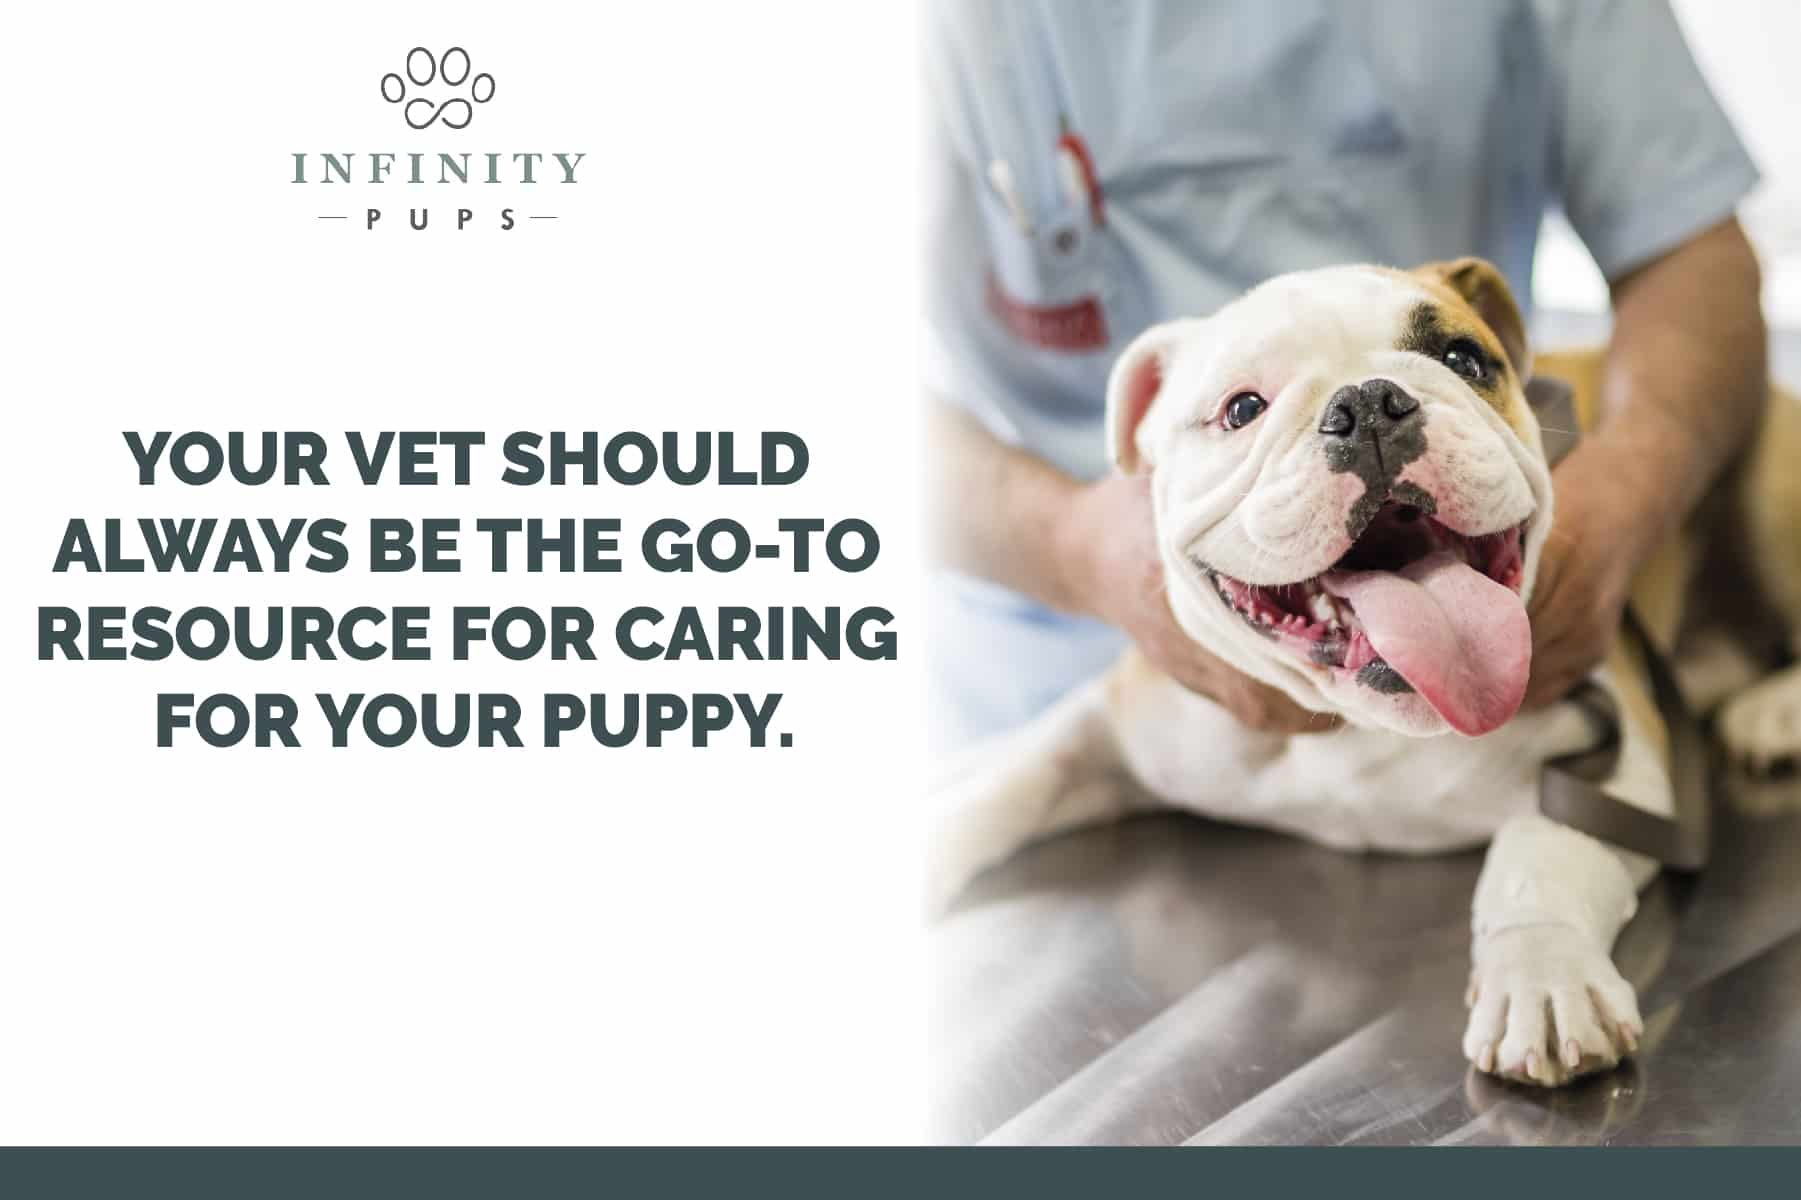 your vet is the best source for caring for your puppy